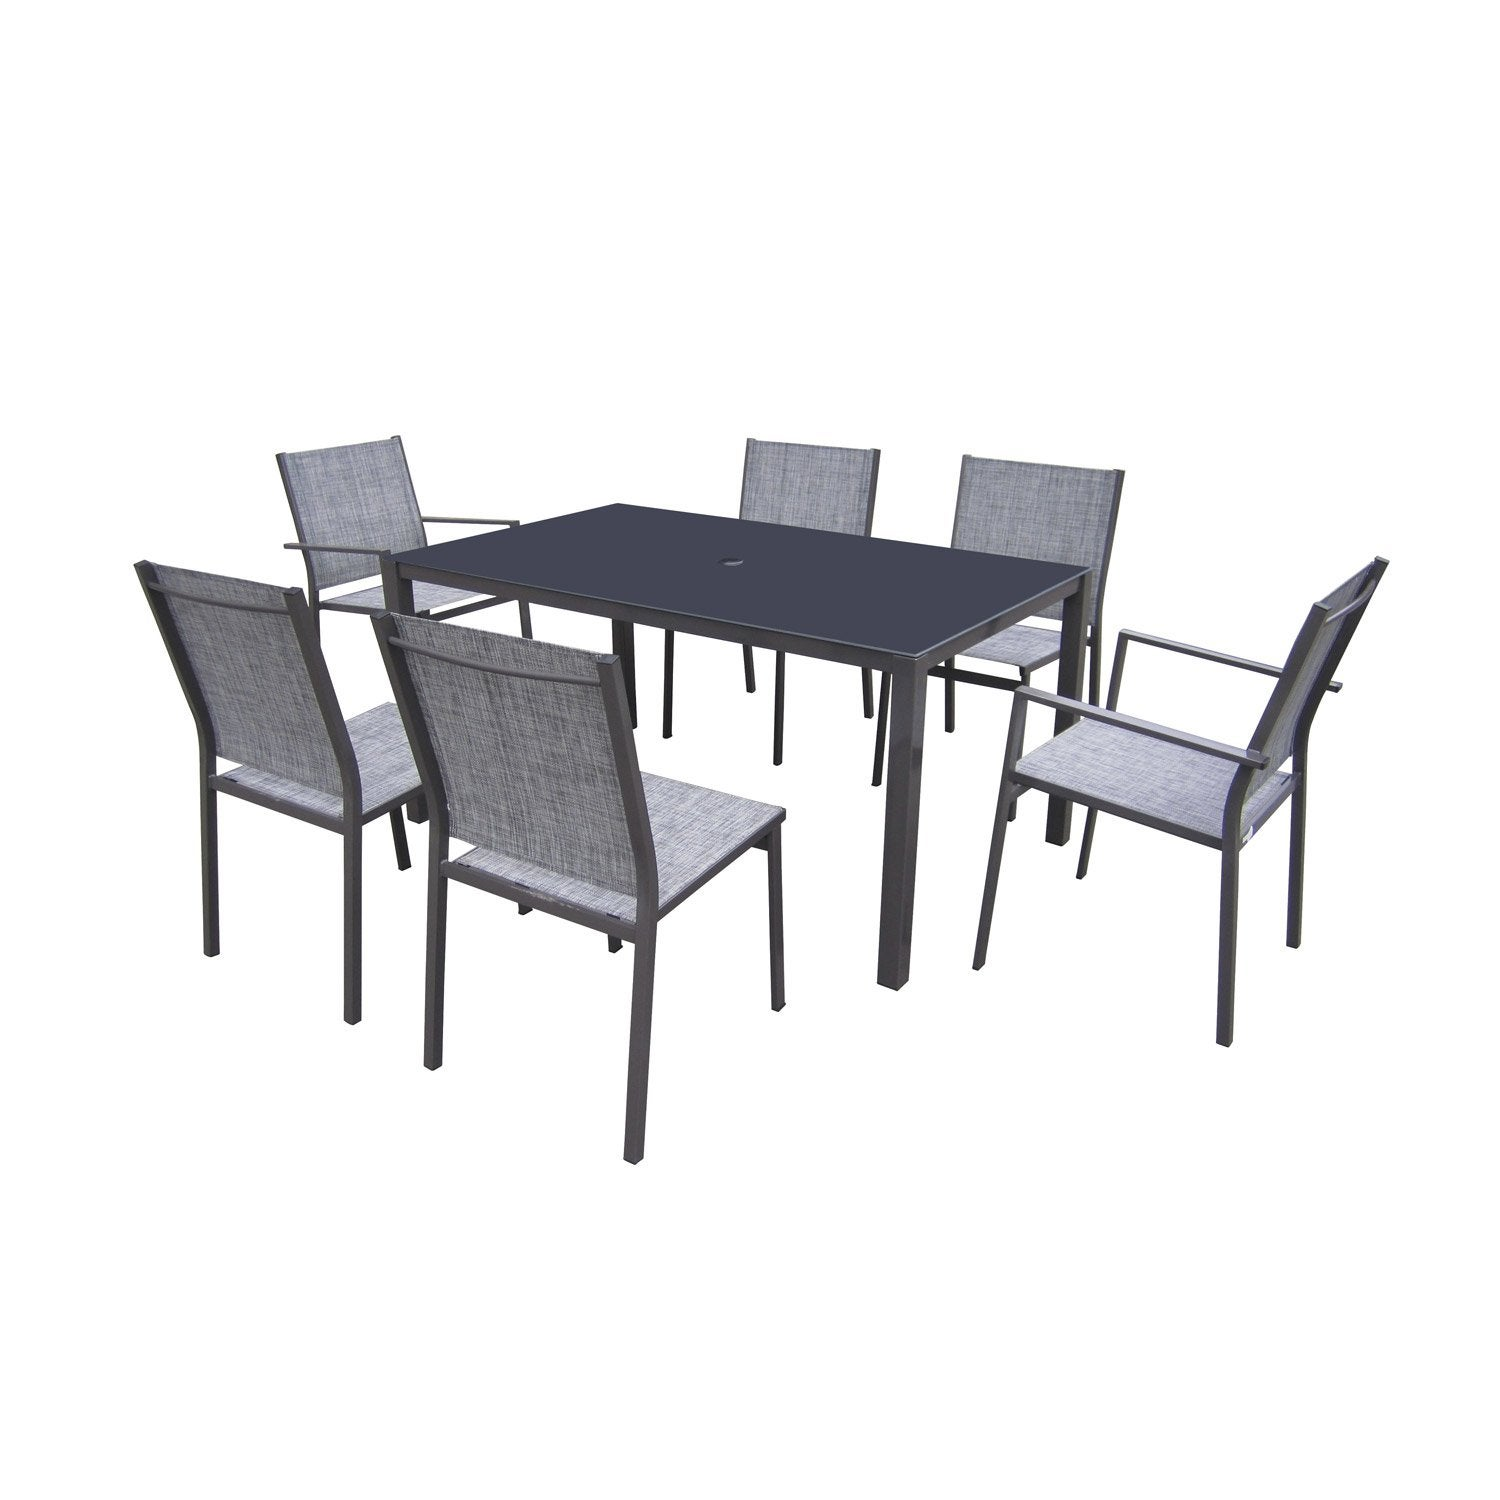 Salon de jardin denver acier gris anthracite 1 table 4 for Salon table et chaises de jardin